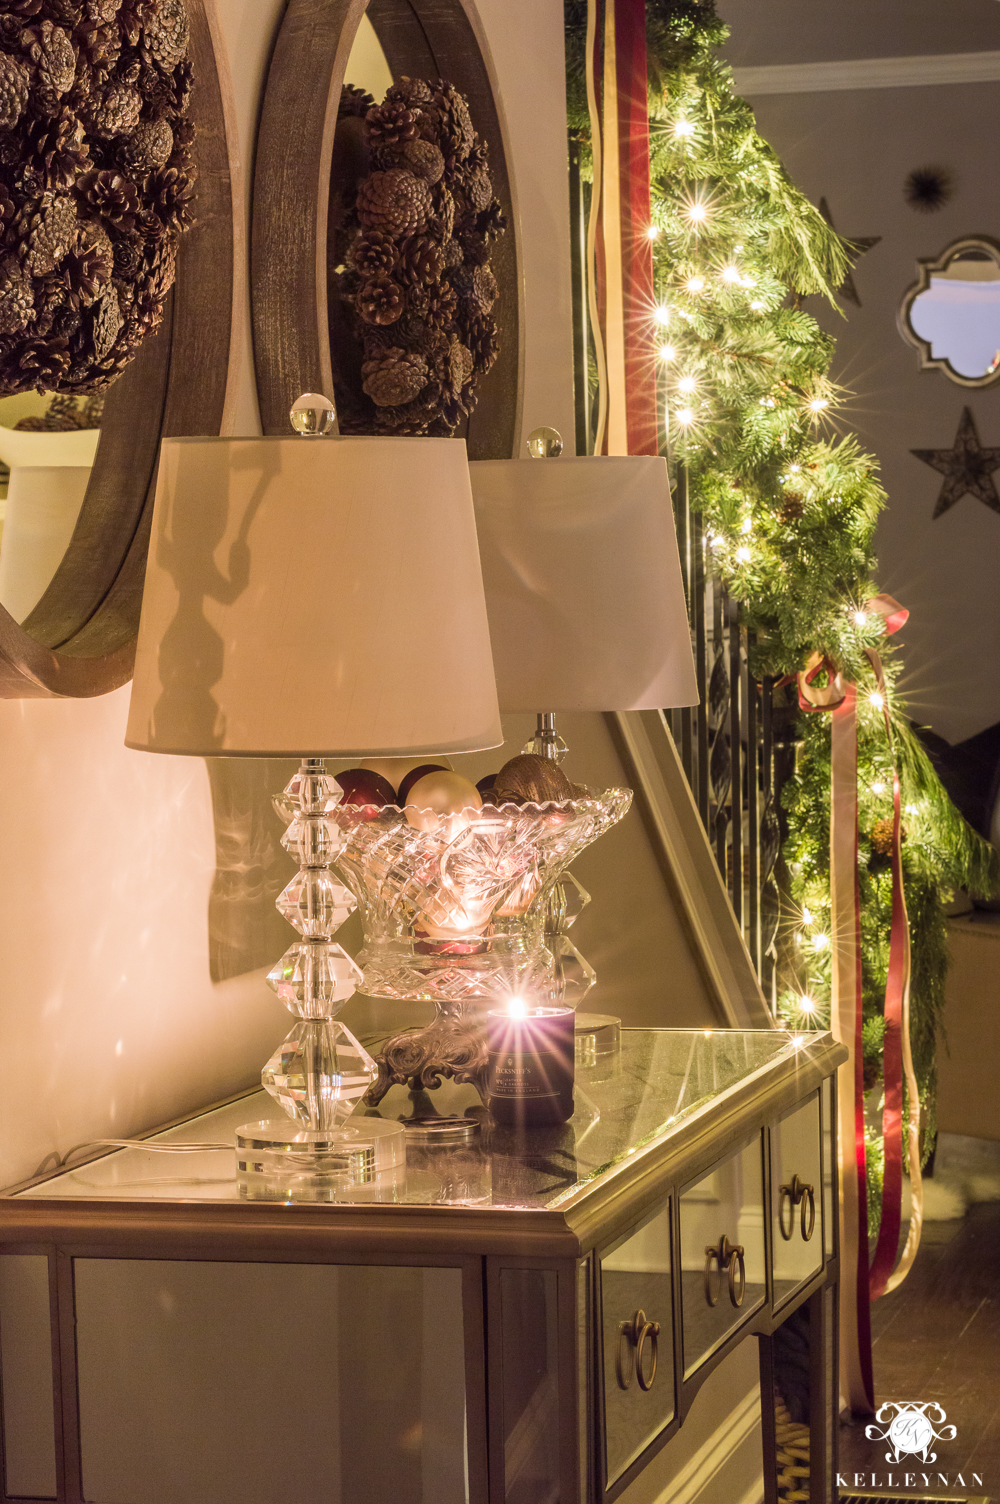 Christmas console table decor at night